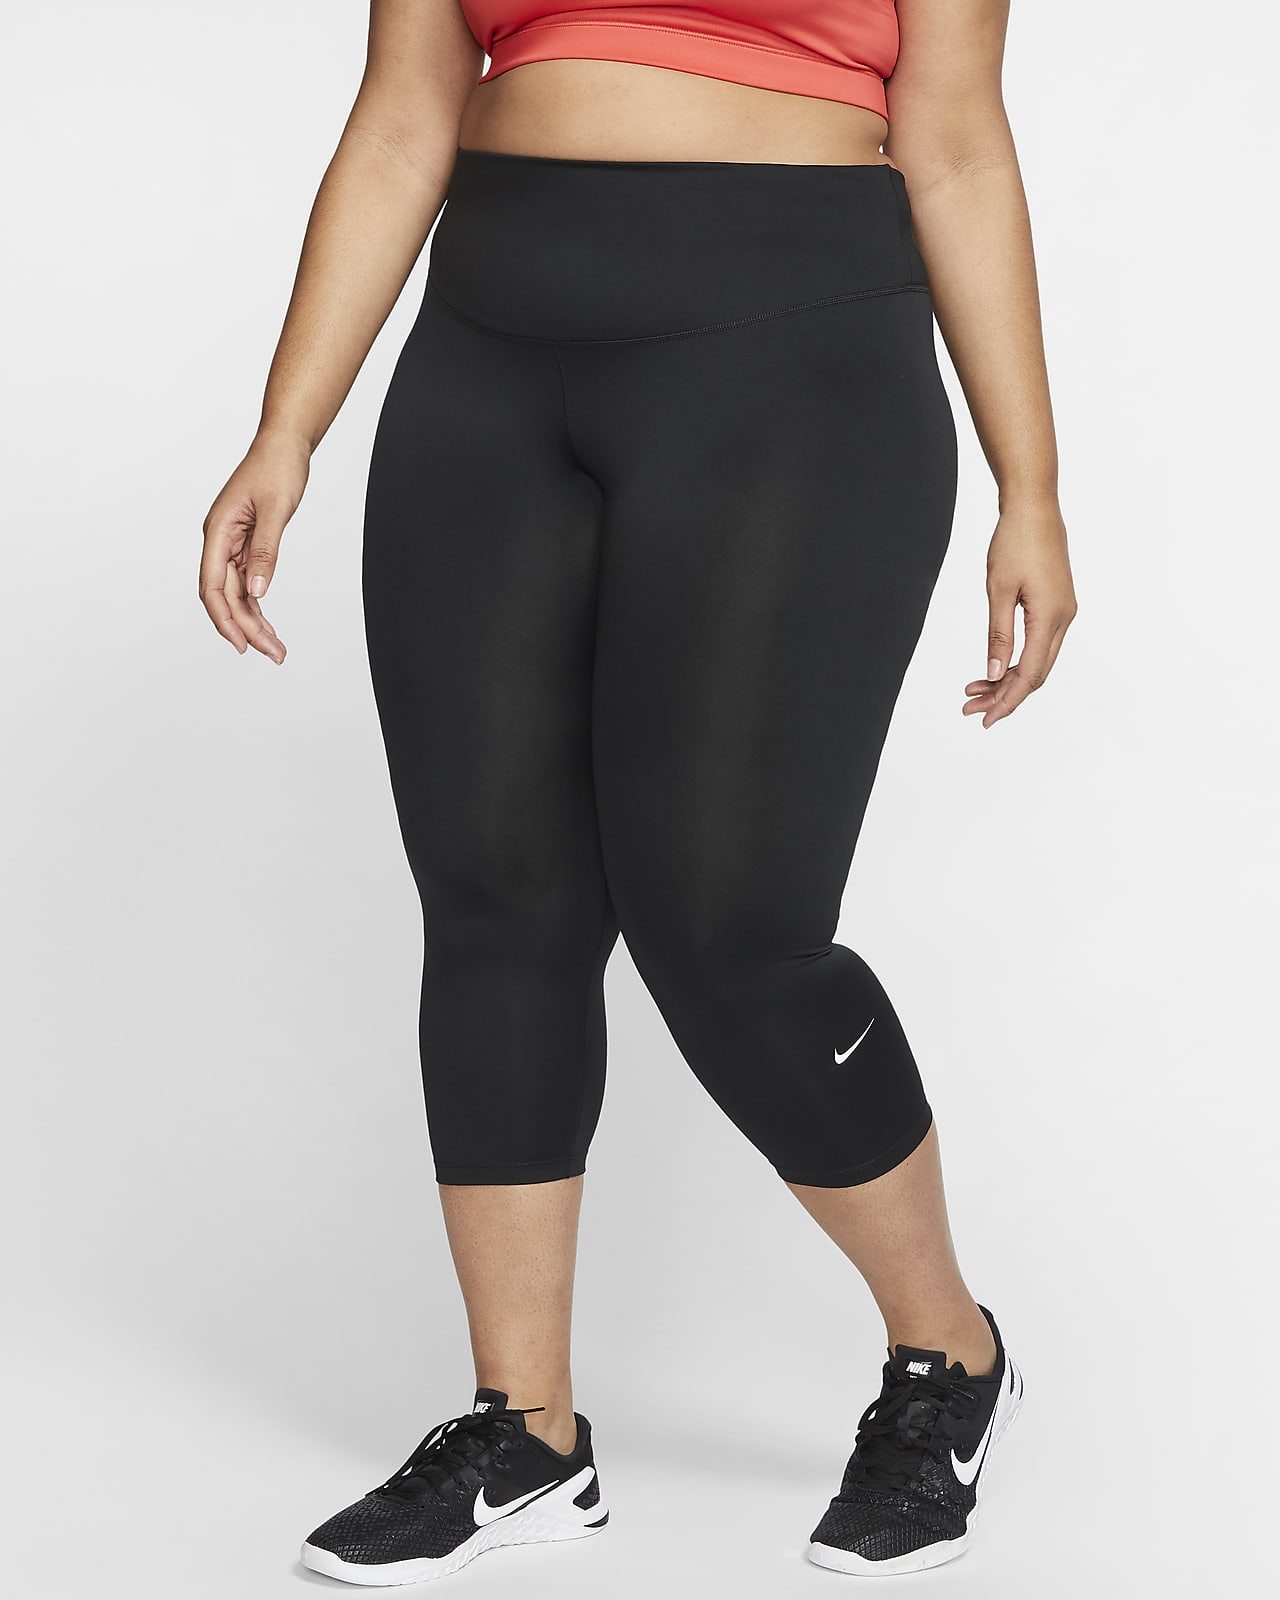 Leggings a lunghezza ridotta e vita media Nike One (Plus size) - Donna